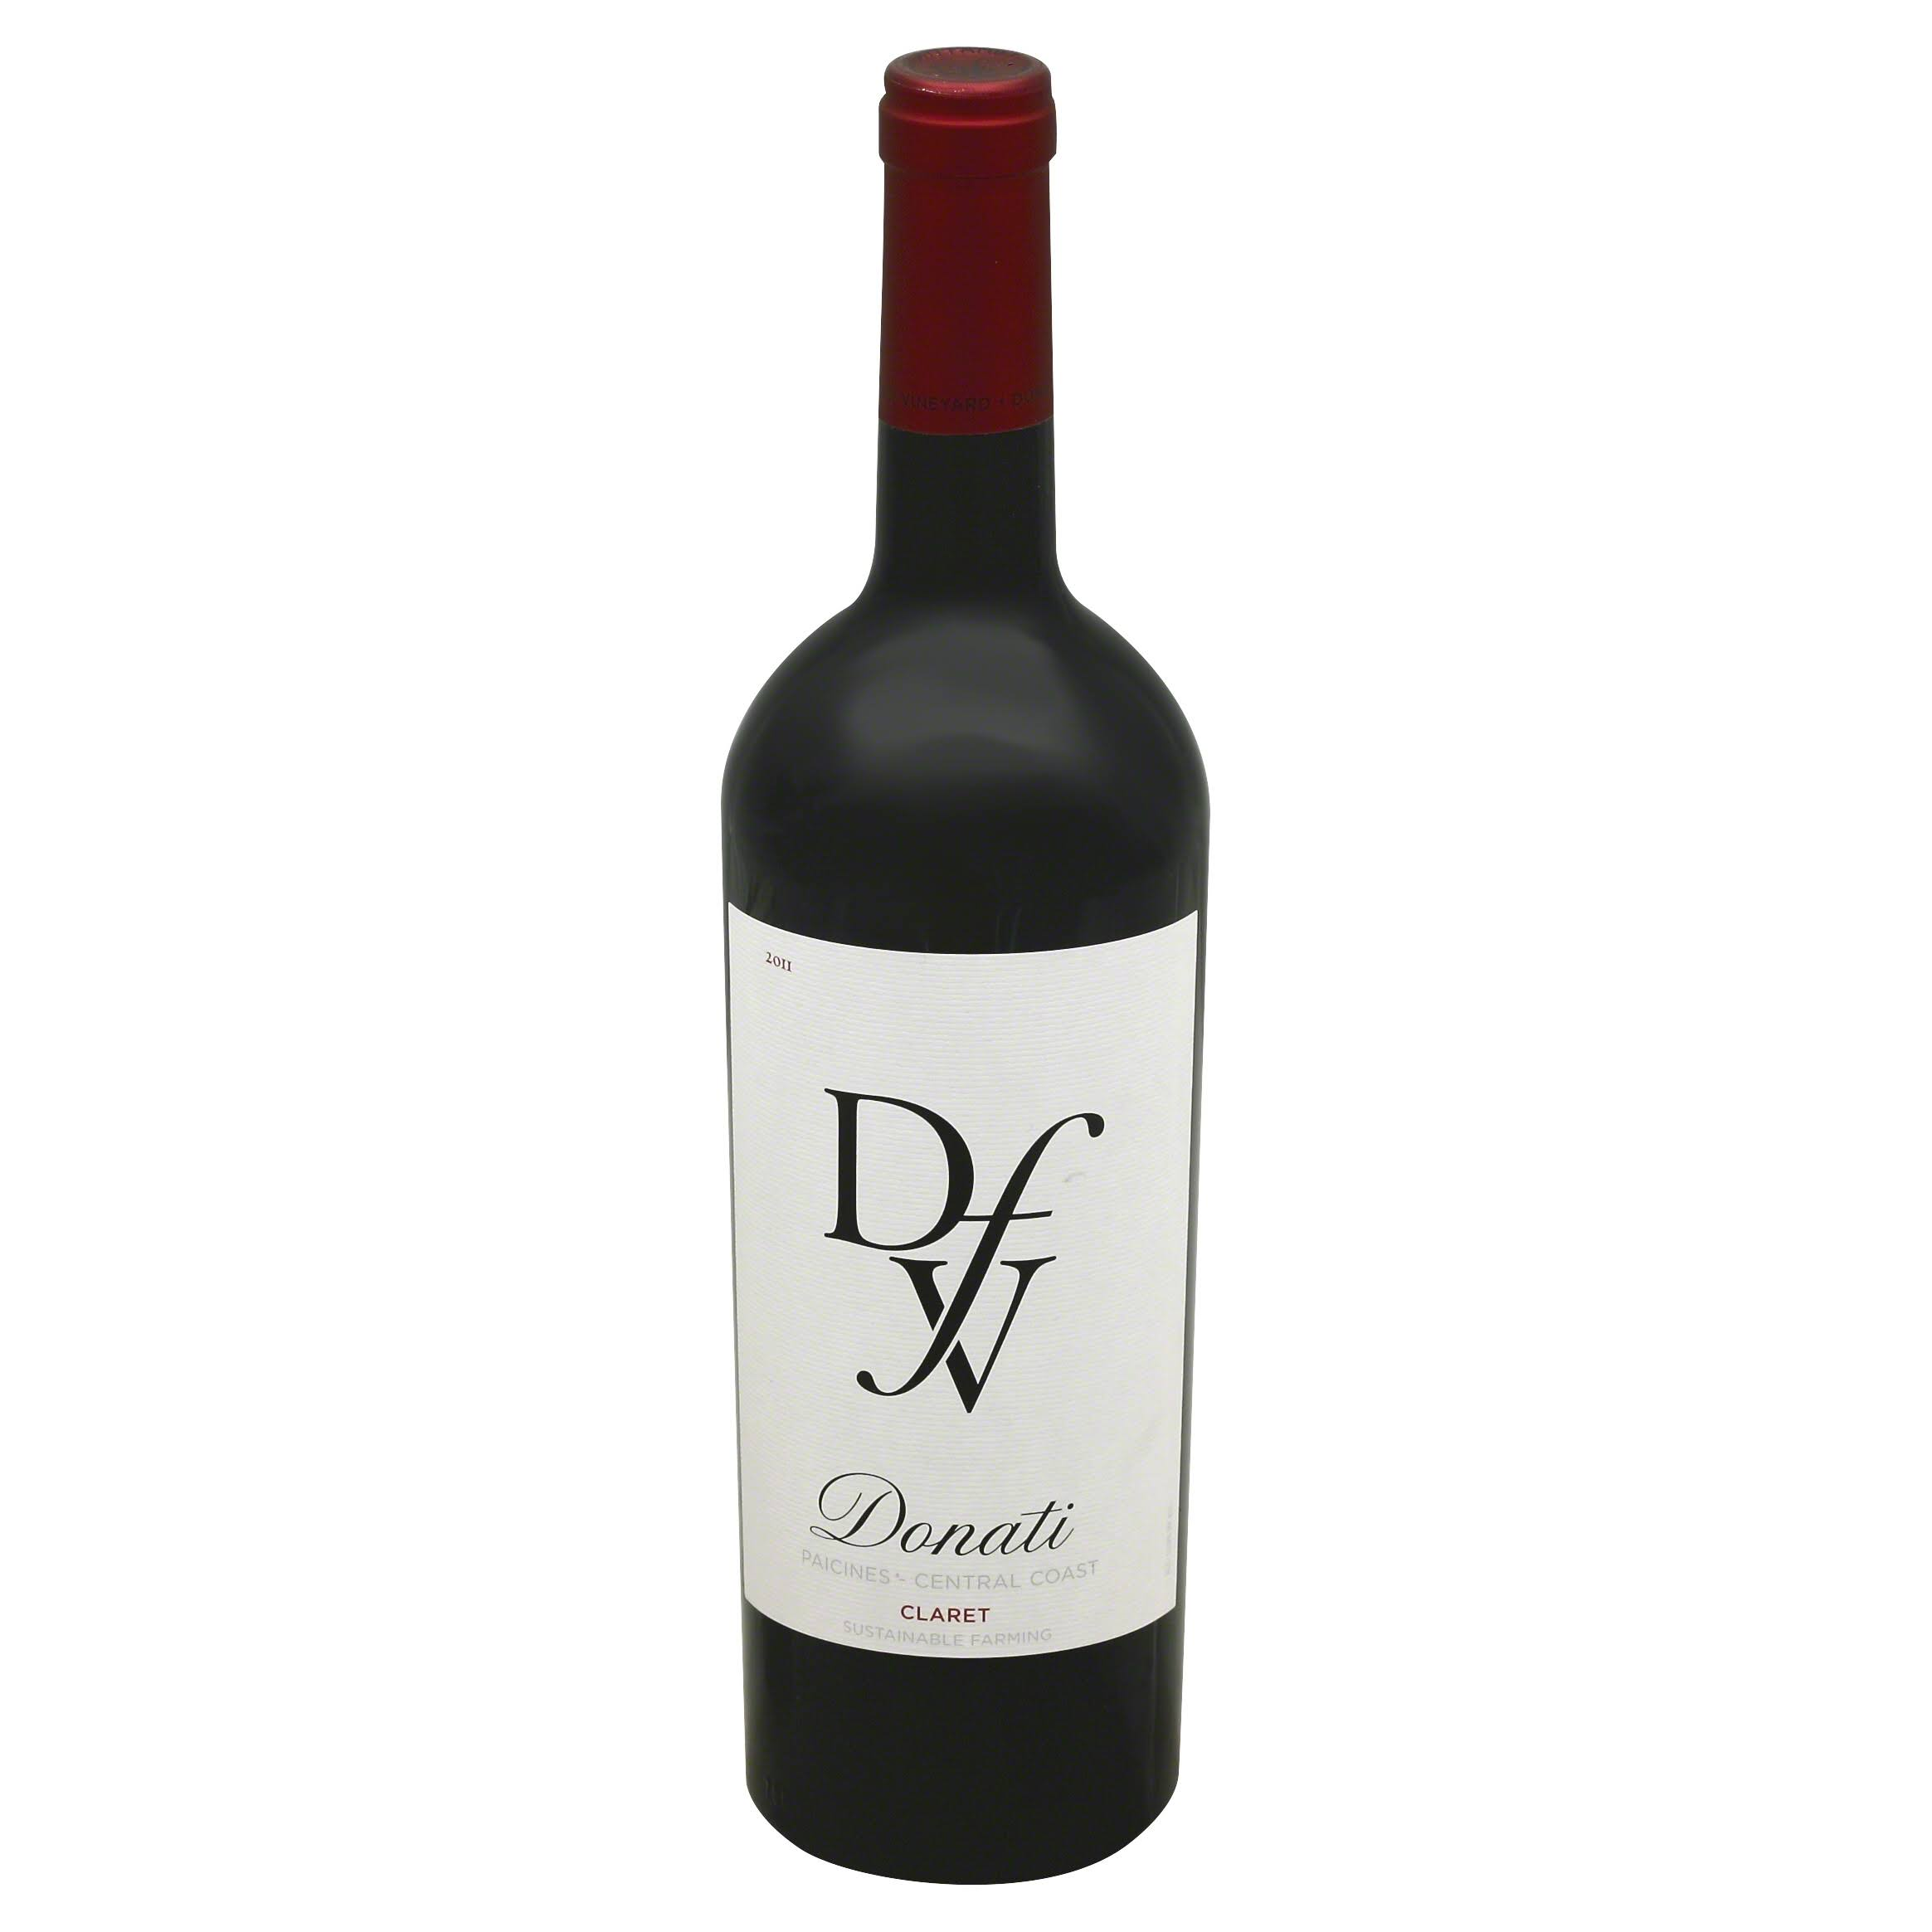 Donati Claret, Paicines - Central Coast, 2011 - 750 ml